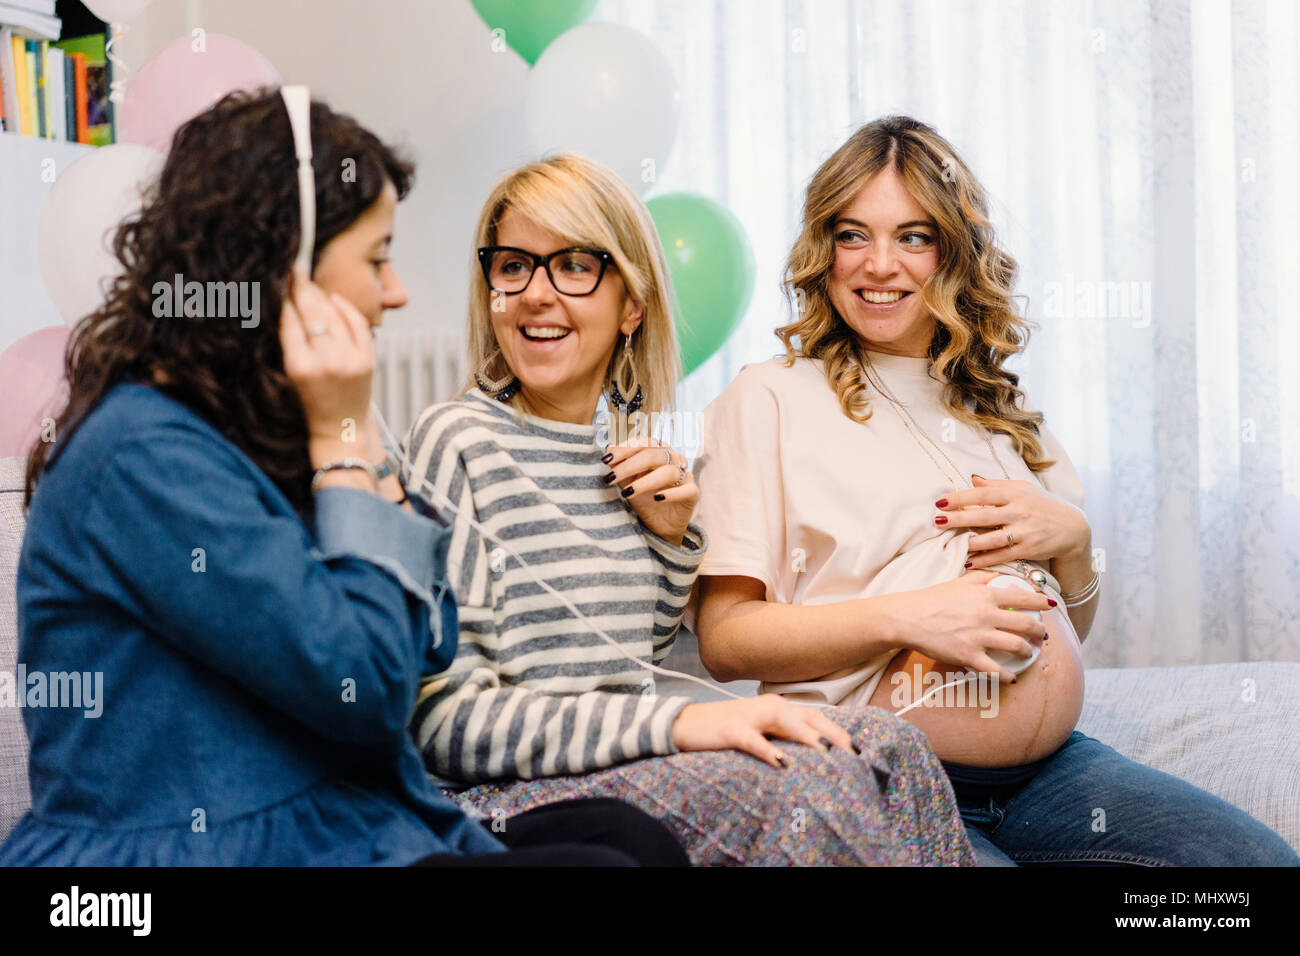 Pregnant woman and friends on sofa using prenatal listening device - Stock Image